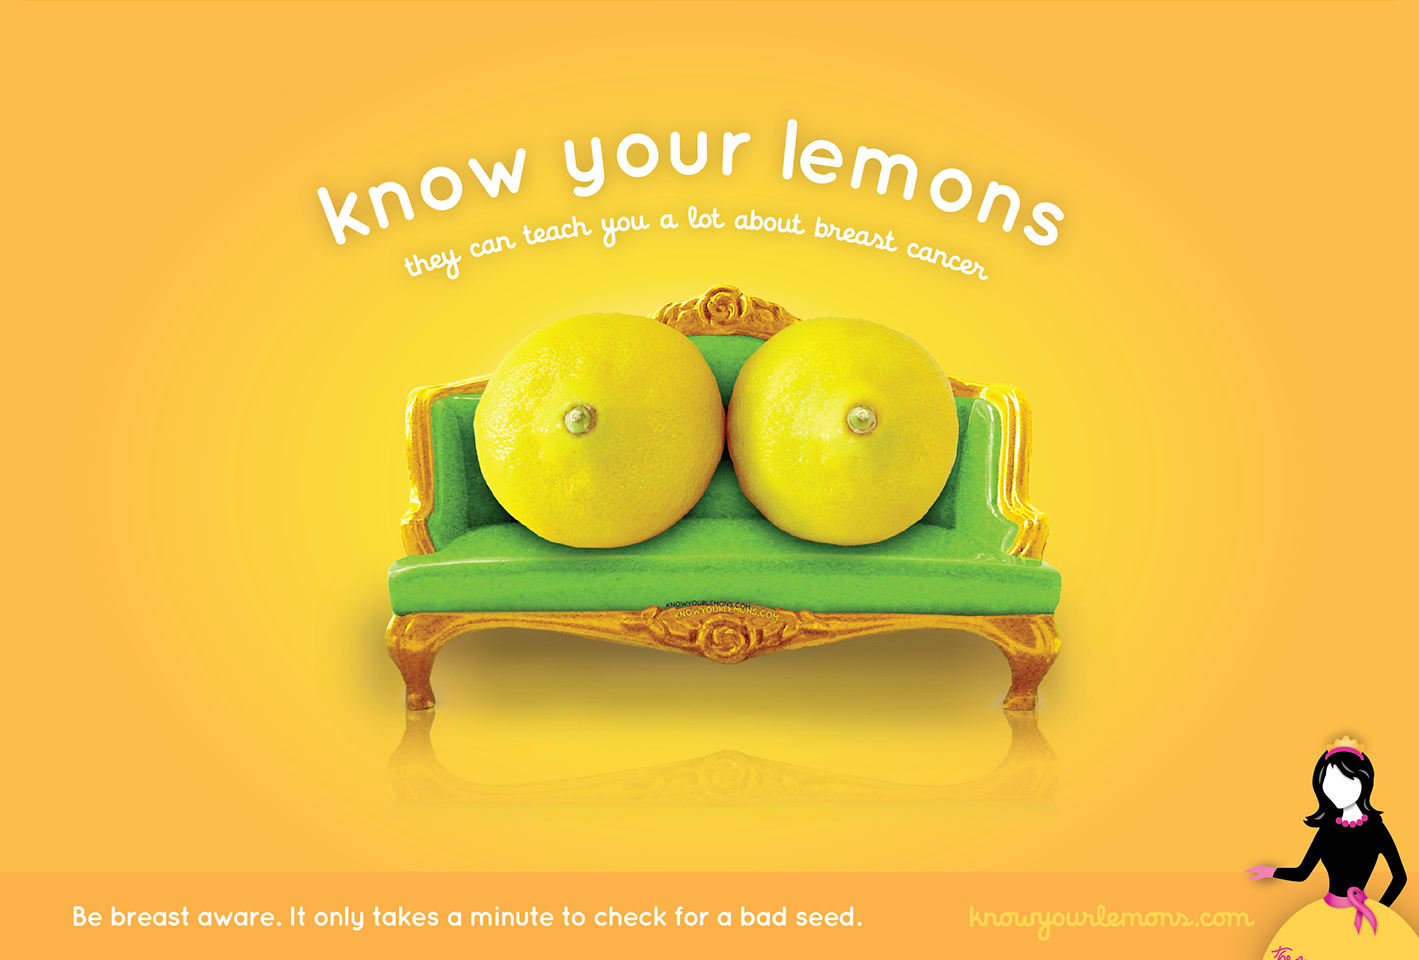 #KnowYourLemons: MFA Alumni Receives Global Attention